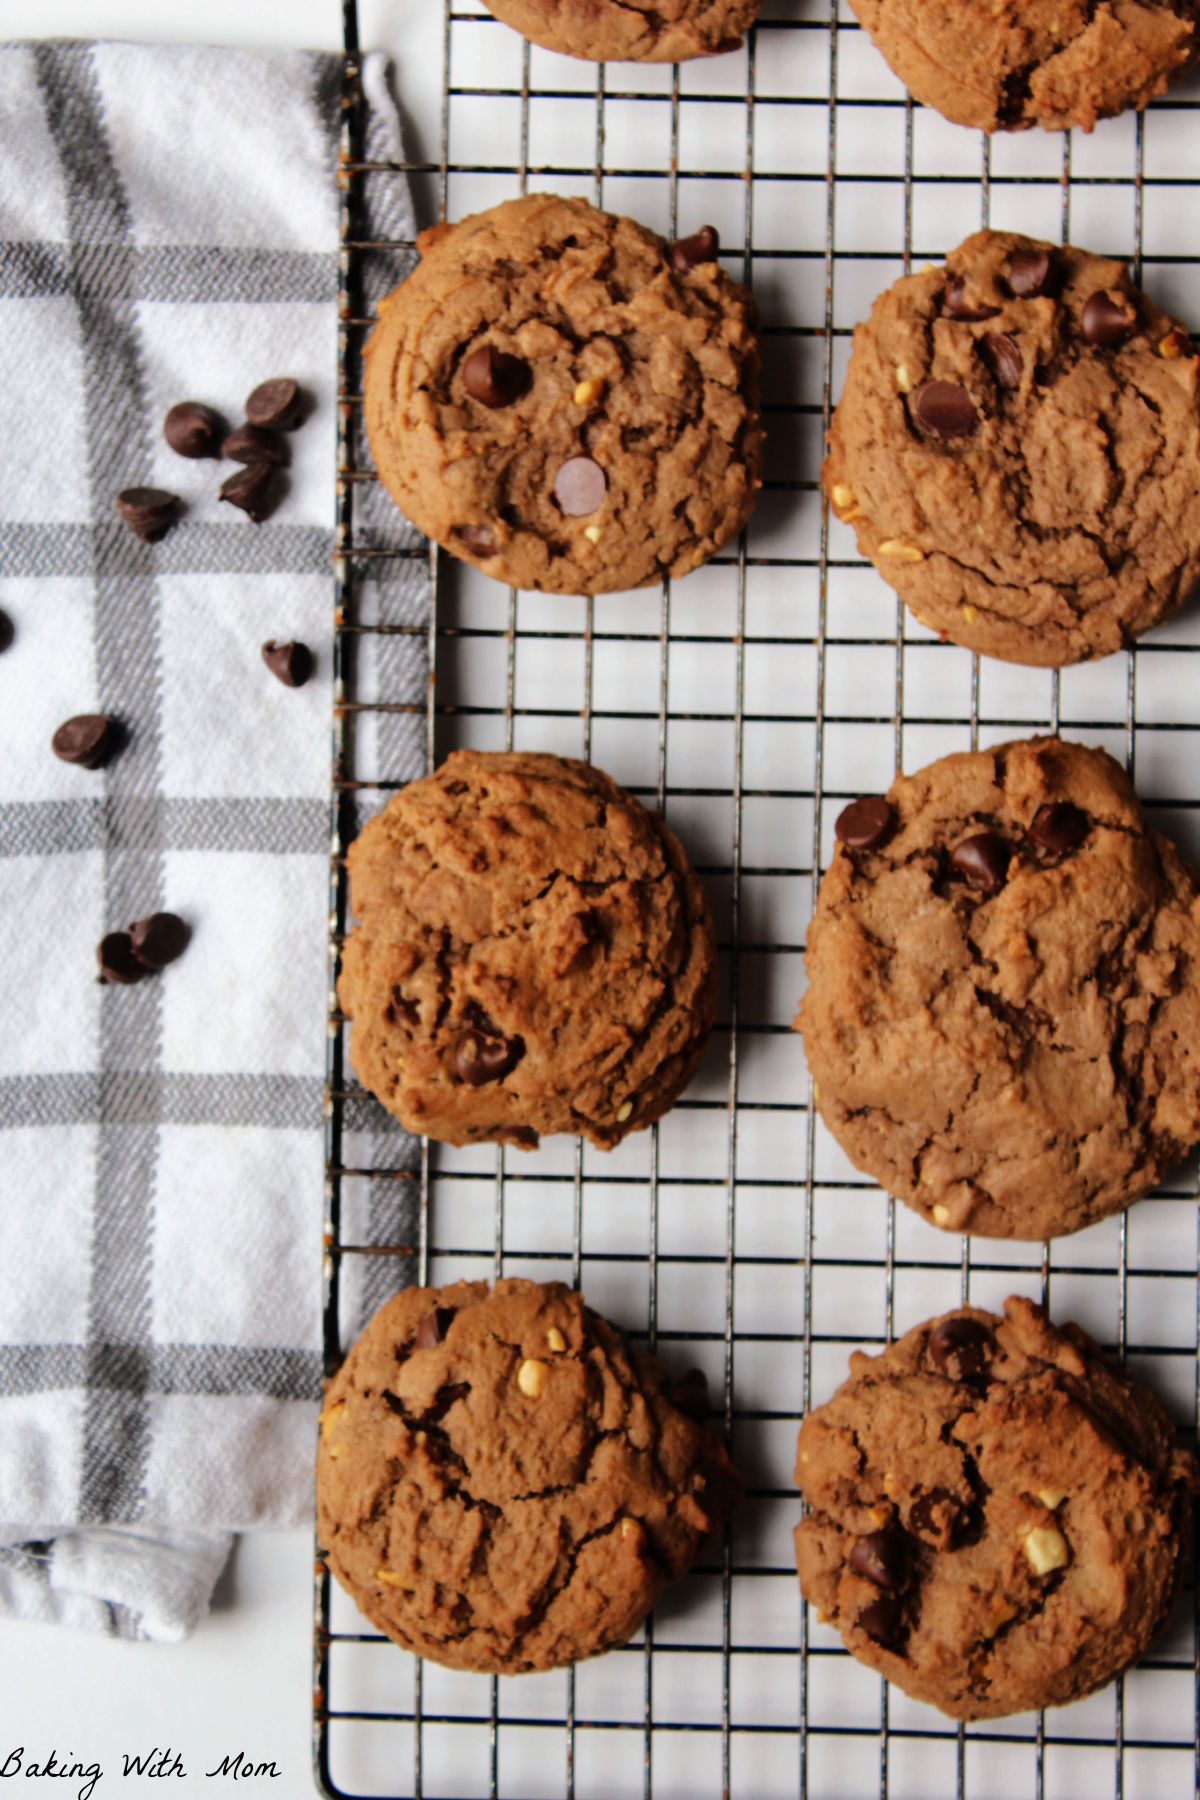 Peanut butter and chocolate cookies on a cooling rack.